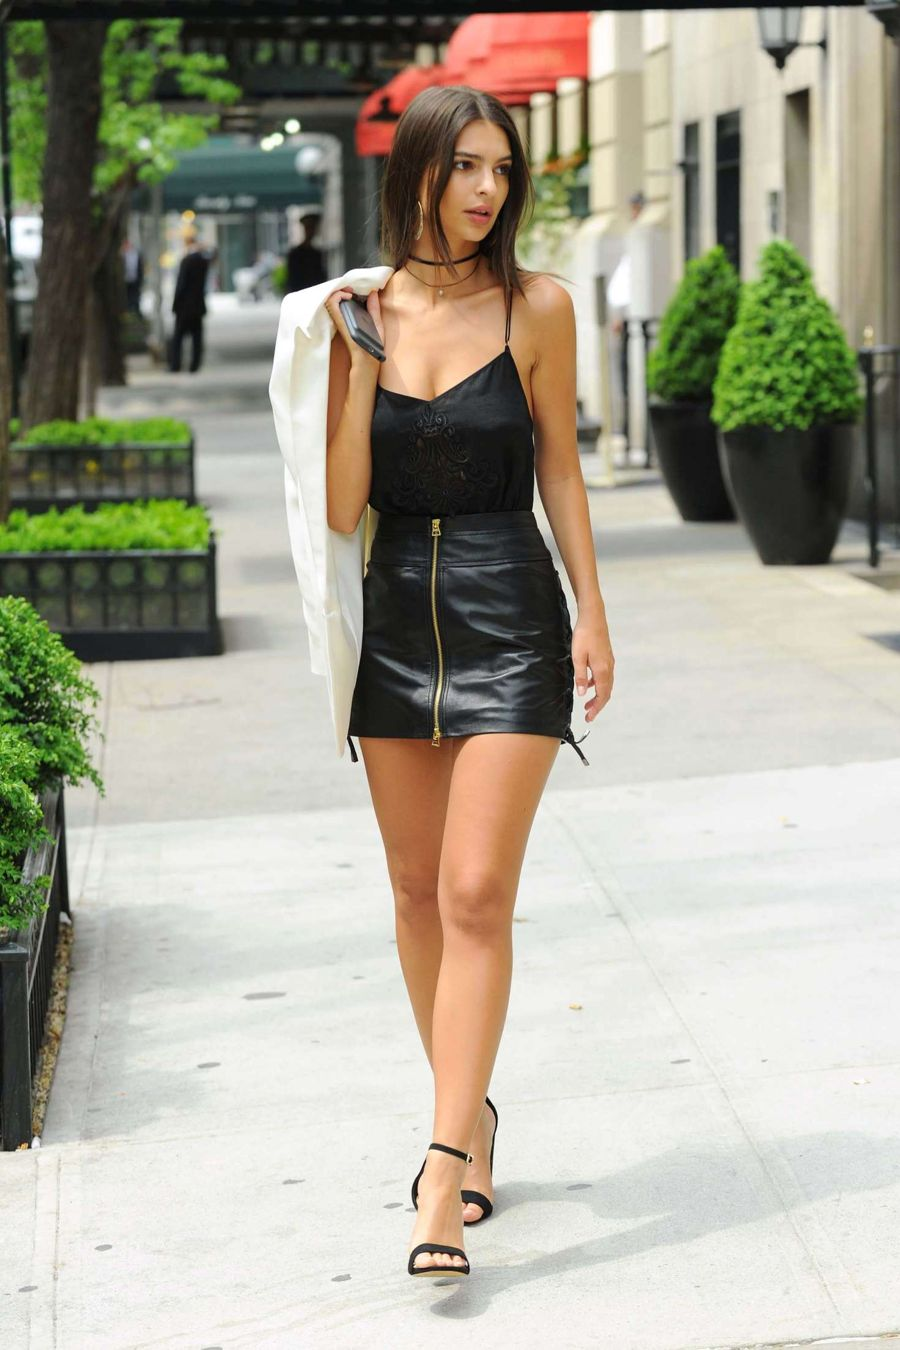 Emily Ratajkowski shows off her Trim Legs